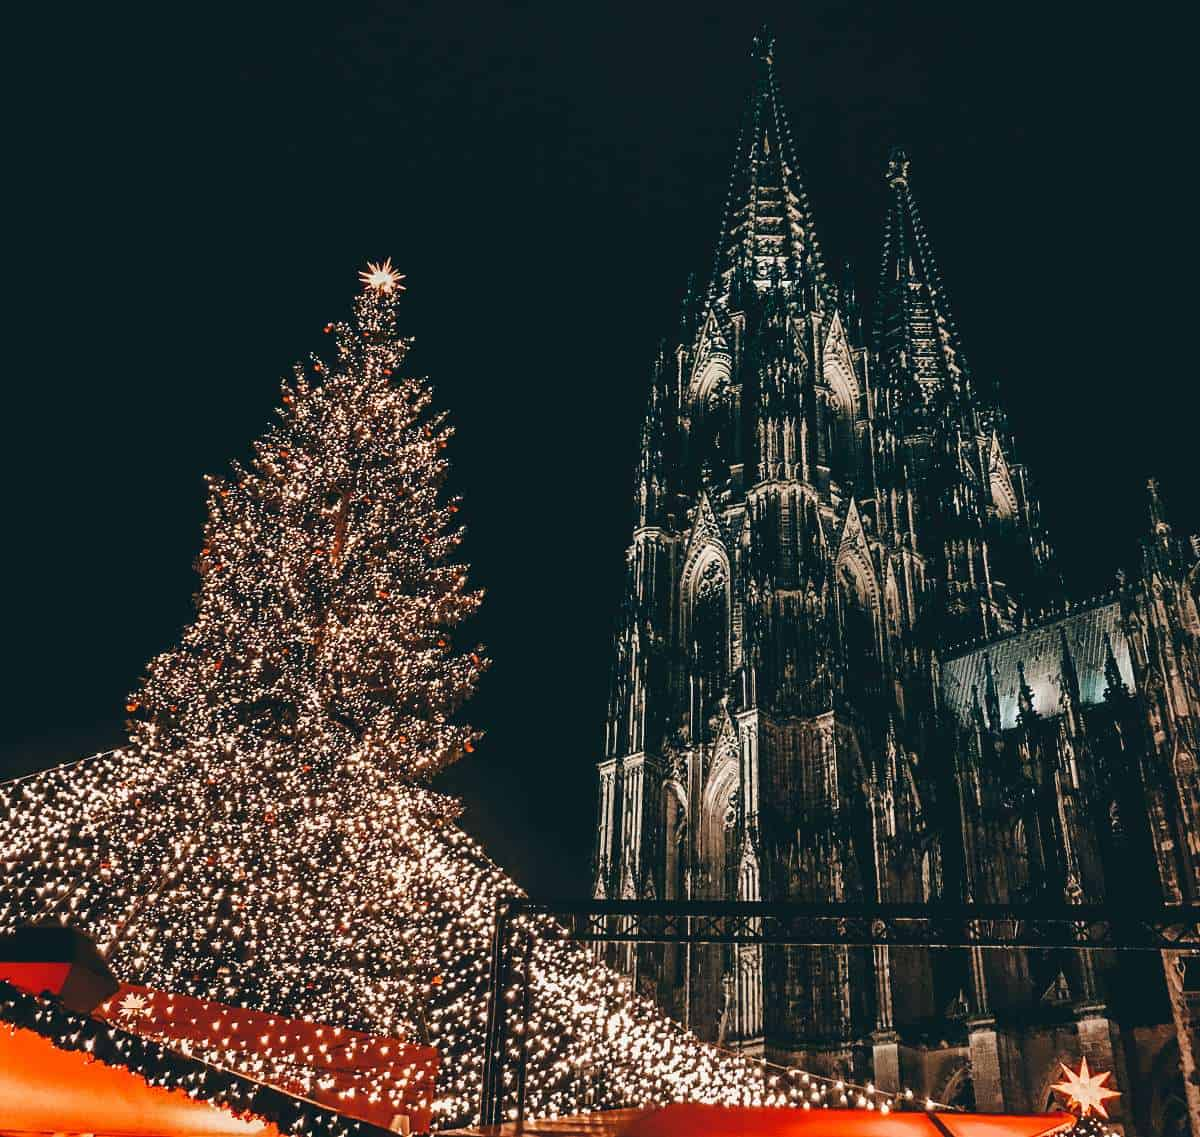 Cologne cathedral at night with a lit Christmas tree and red rooves below